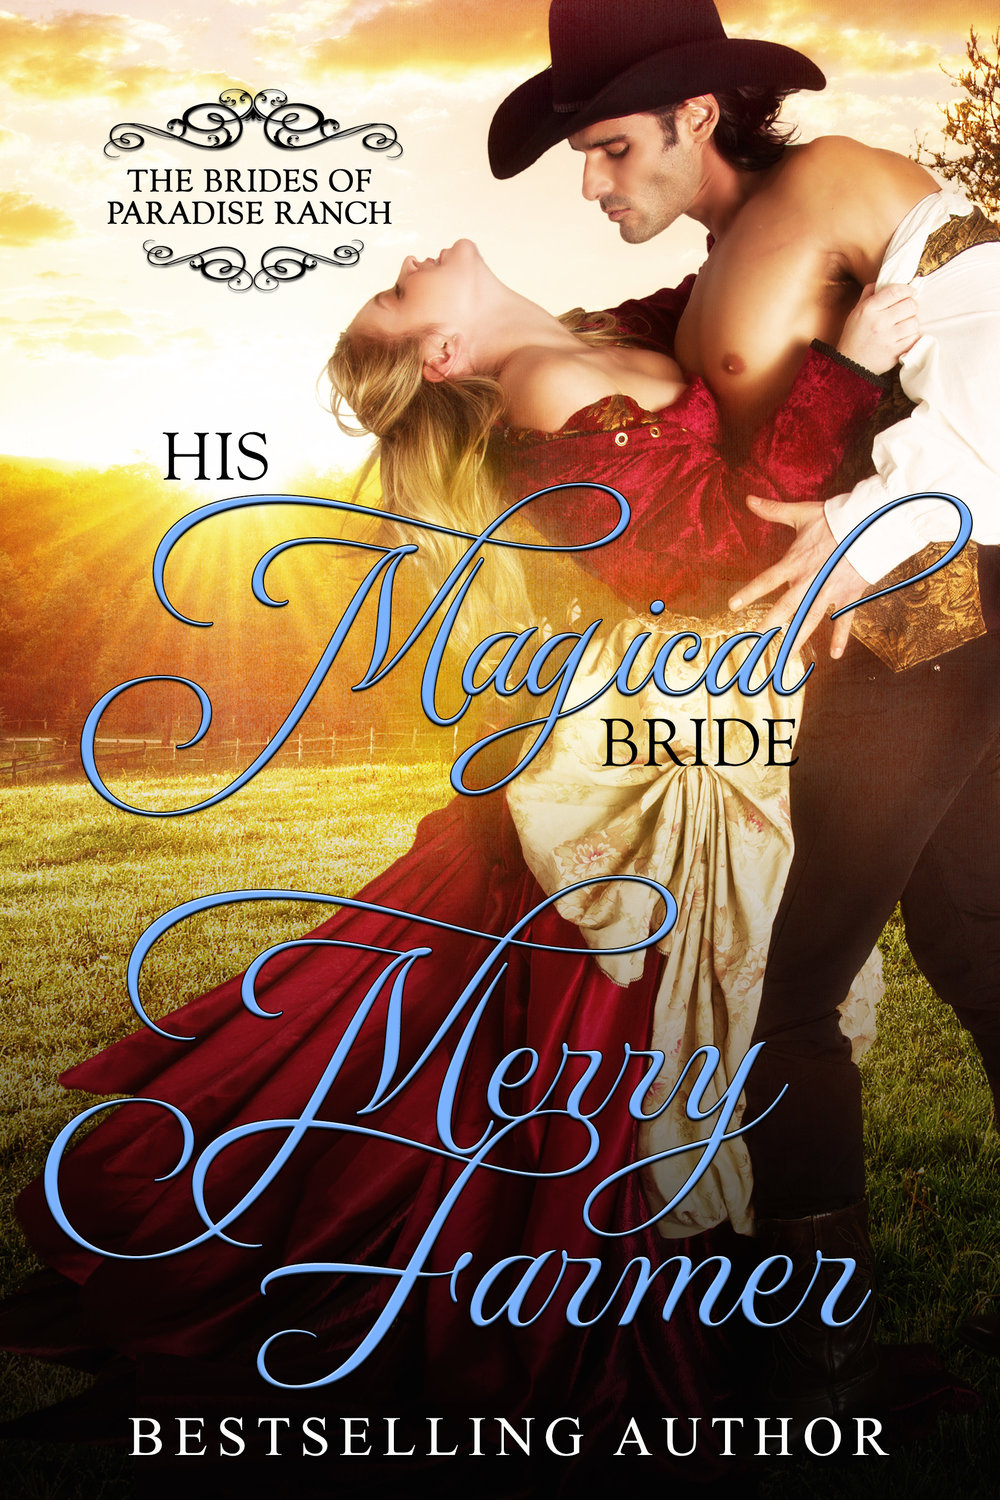 "His Magical Bride (Book 10) - Haskell, Wyoming sheriff, Trey Knighton, has never considered himself the marrying sort. He'd rather face down a whole pack of bloodthirsty outlaws than give his heart away, especially after losing his entire family to cholera as a boy. Love is just too big of a risk. But Howard Haskell has twisted his arm into sending away for a mail-order bride, and he's too much of a gentleman to turn her away. He's convinced everything will be fine if his marriage is in name only.Talia Lambert is overjoyed not only to have a home and a husband at last, she's eager to put her skills as a nurse to good use. She gets her chance only days after arriving in Haskell when influenza breaks out. She is happy to be of use, but as the attraction between her and Trey grows, so does Trey's fear that disease will take her too if she continues working with the sick. But Talia and Trey face a danger more sinister than disease when her healing skill is labeled as witchcraft. Trey must defend Talia against the ridiculous accusations, even as he overcomes his fears to find with Talia the love he has always been missing.PLEASE BE ADVISED: Steam Level = HOTIf you would like to read this story without any ""scenes,"" check out Talia: The Magical Bride."